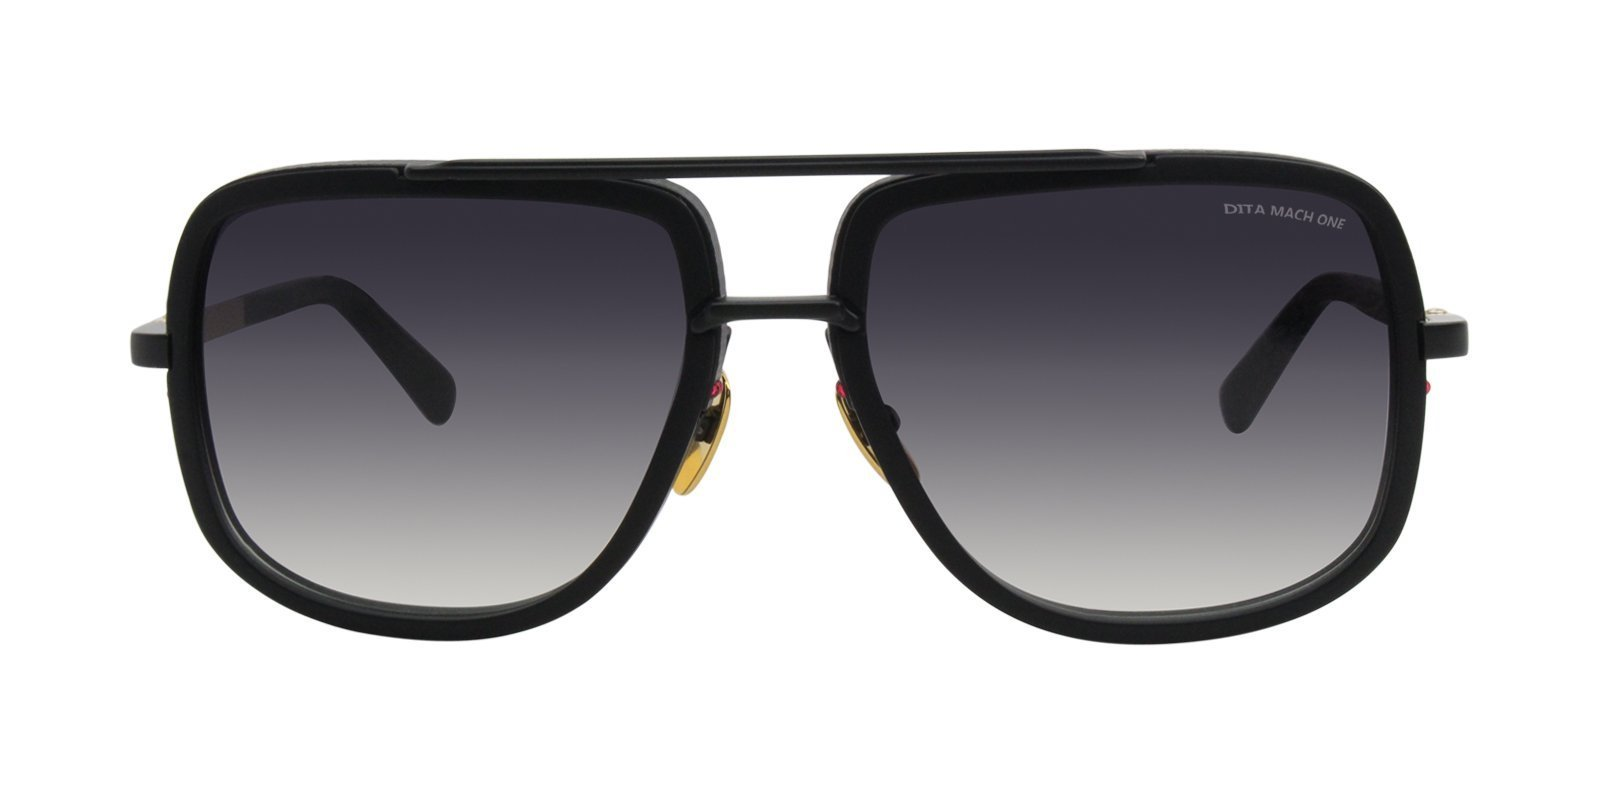 072d5ebaeb8 Dita - Mach One Black - Gray sunglasses